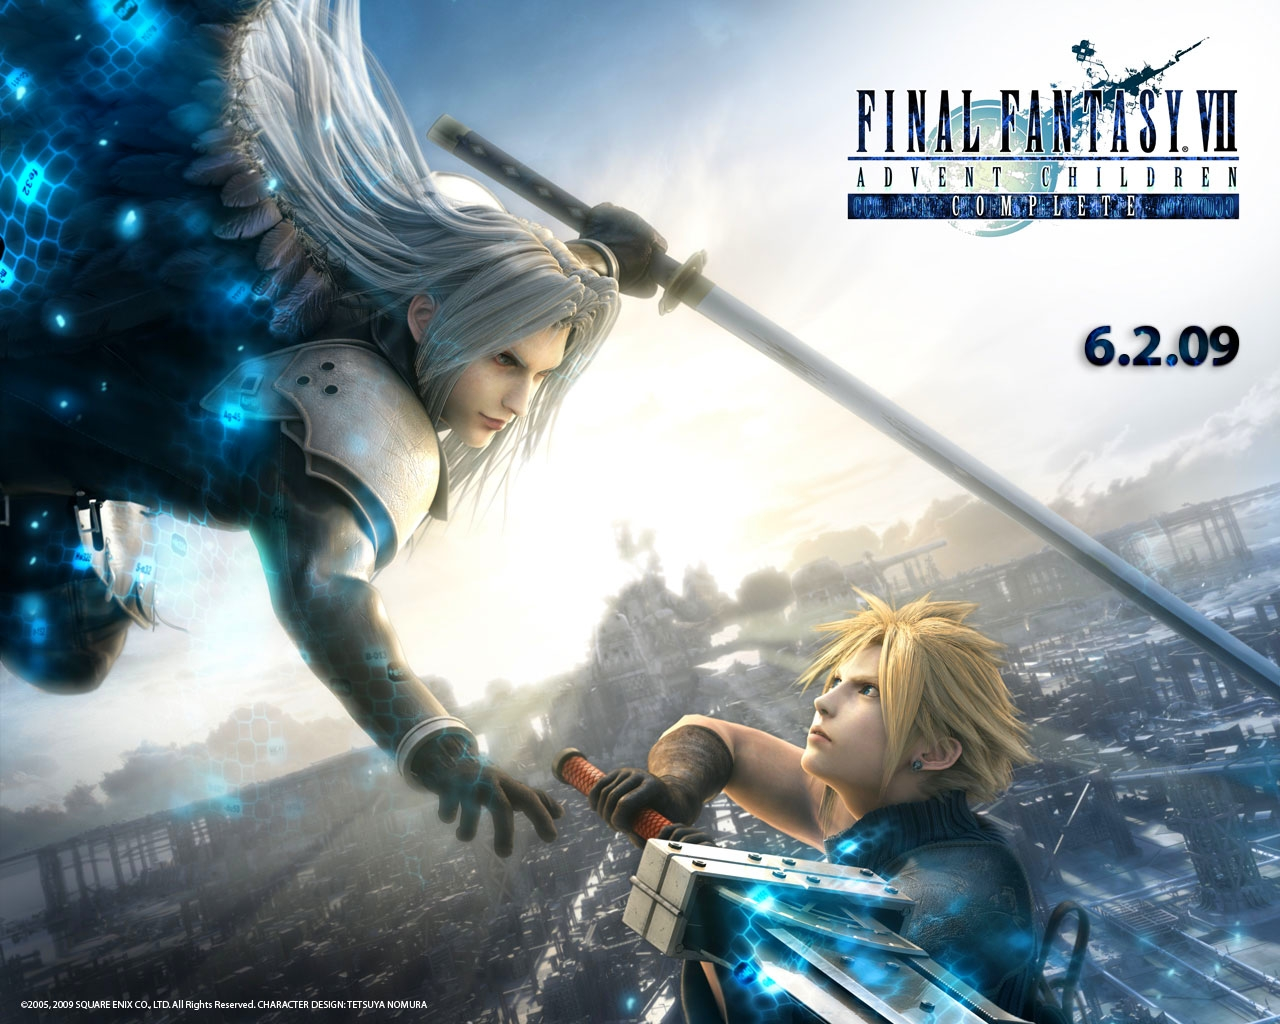 http://4.bp.blogspot.com/-qxZ_Ei6DvY0/UAUhK4M6qZI/AAAAAAAABPc/1SSqrZj5MXw/s1600/final+fantasy+7+advent+children+complete+vii+ff7+ffvii+cloud+strife+vs+sephiroth++wallpaper+background+square+enix+film+movie.jpg